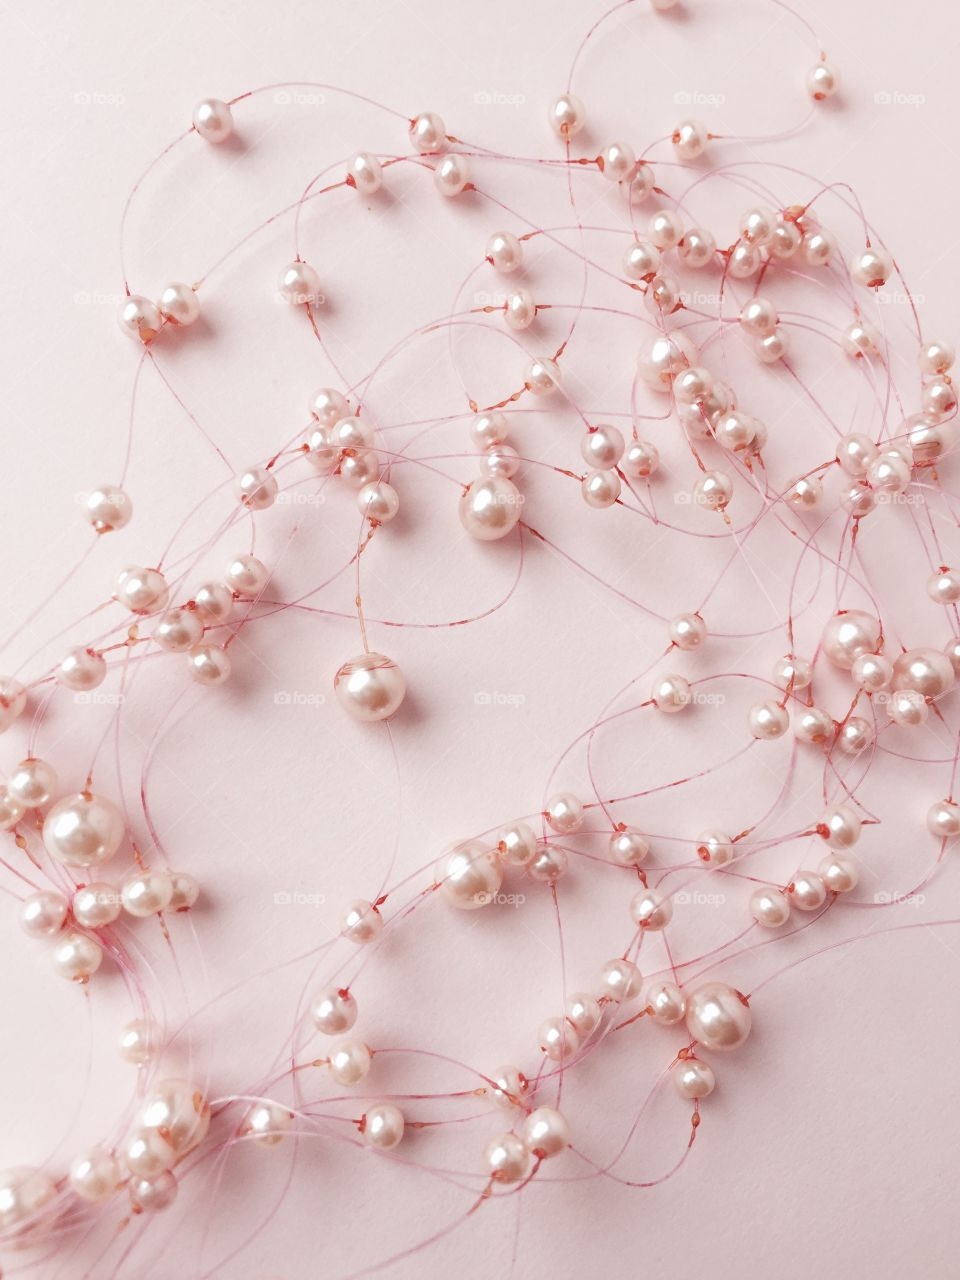 Elevated view of pearl necklace